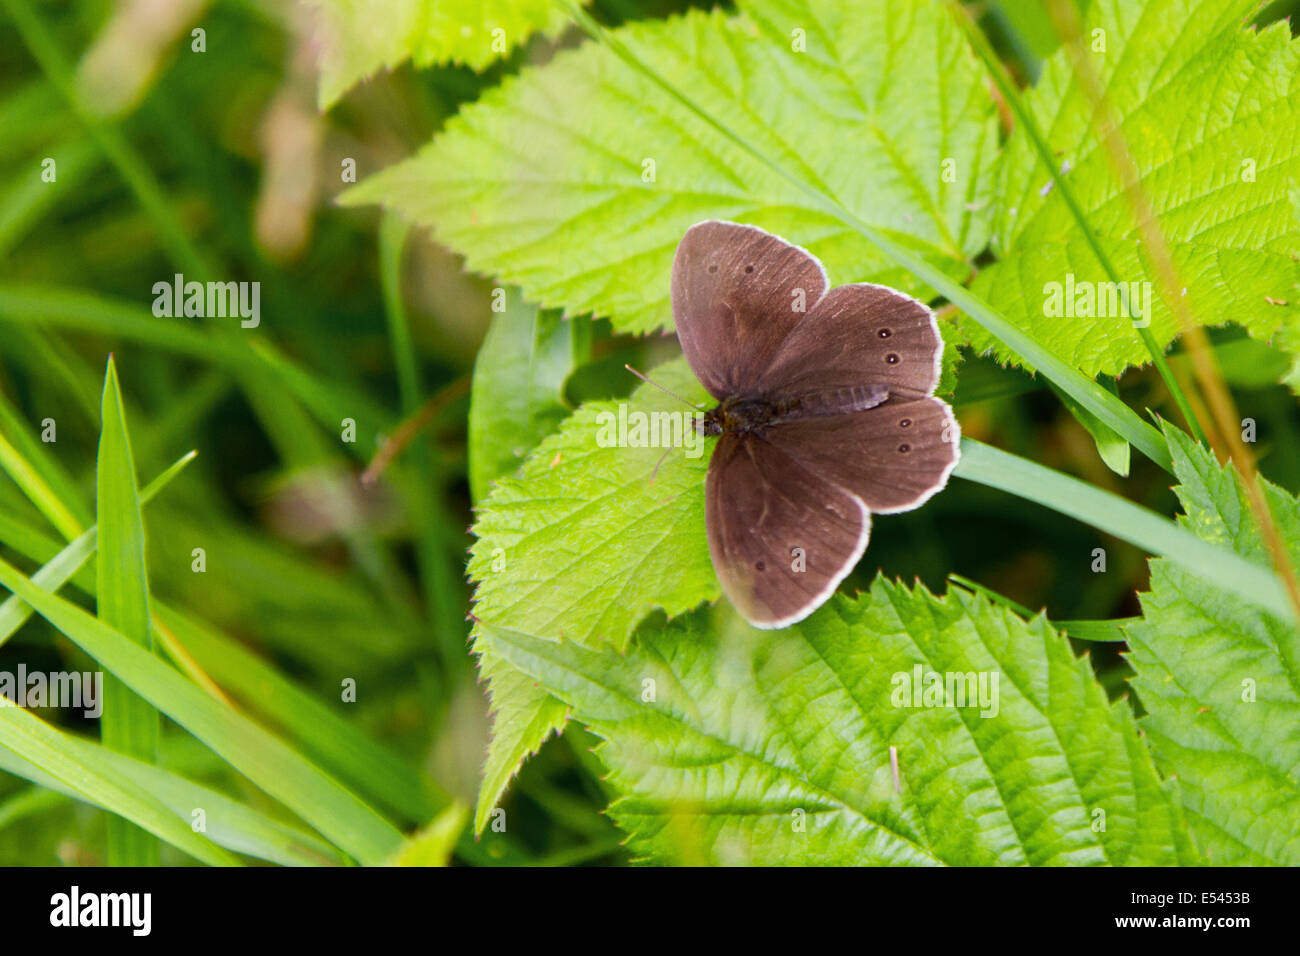 A ringlet butterfly basking in the sun on a leaf in a Surrey field. Stock Photo